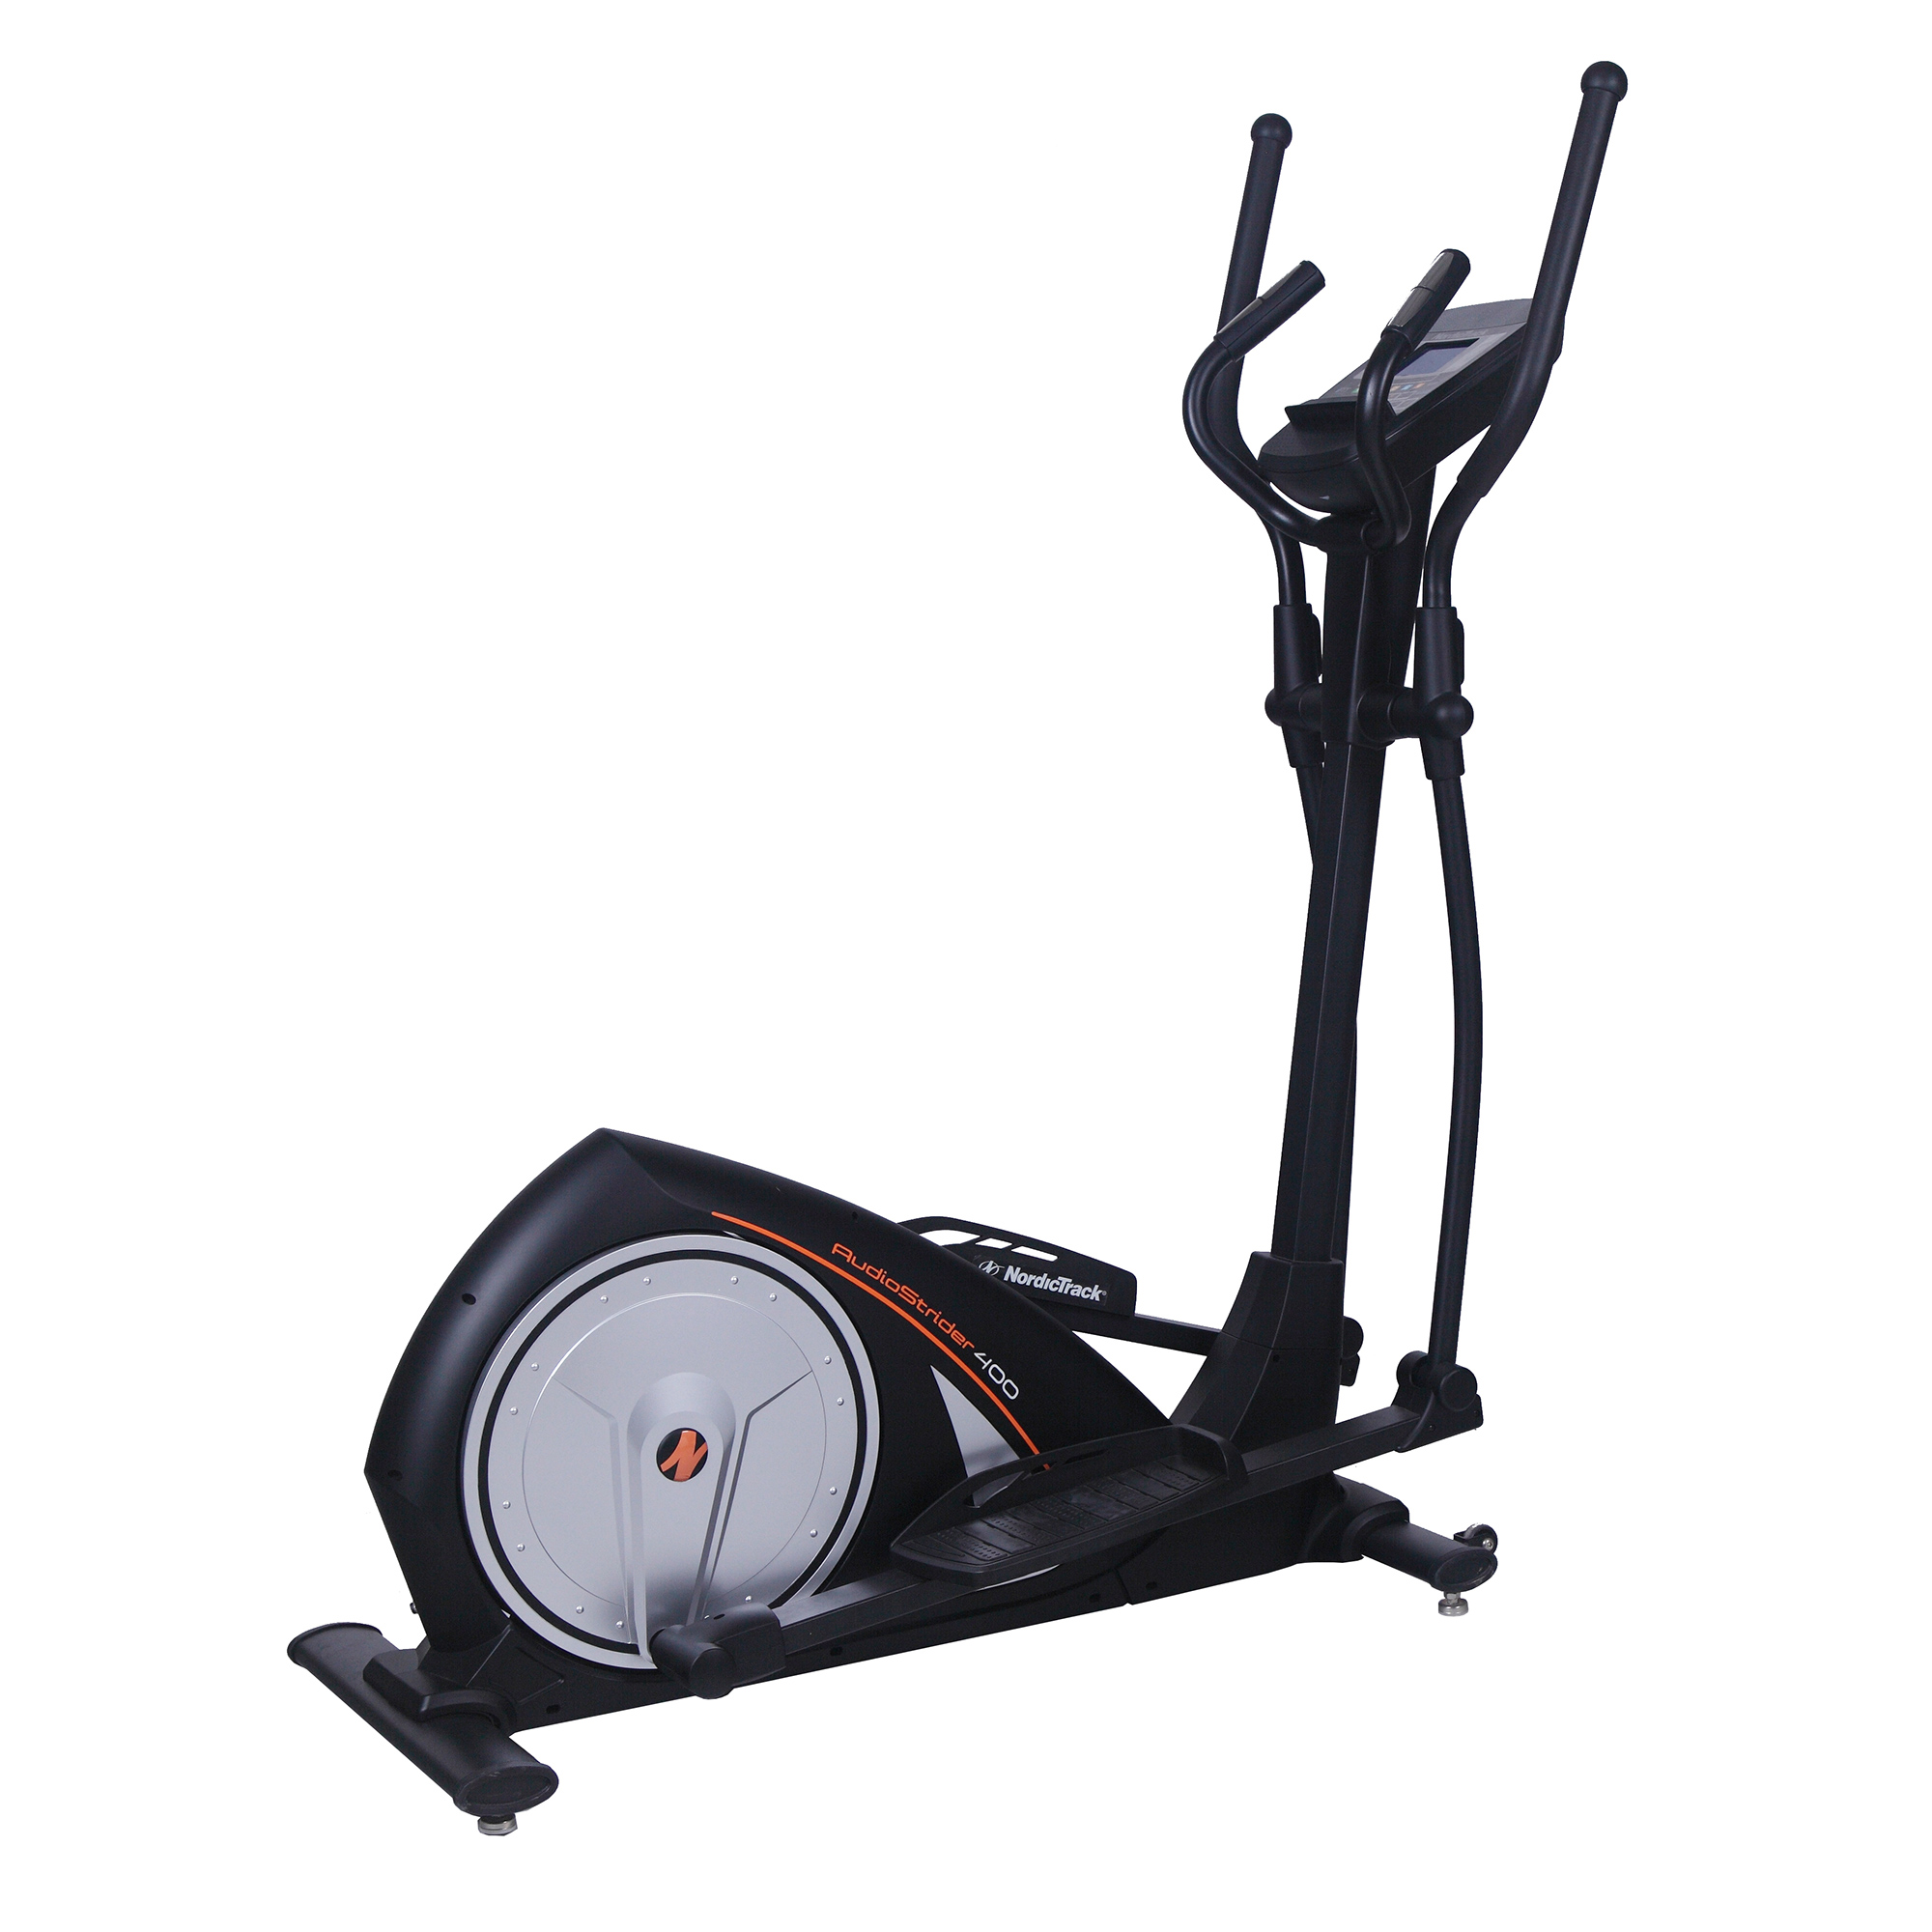 Buy Cross Trainers Under £400Elliptical Cross Trainers